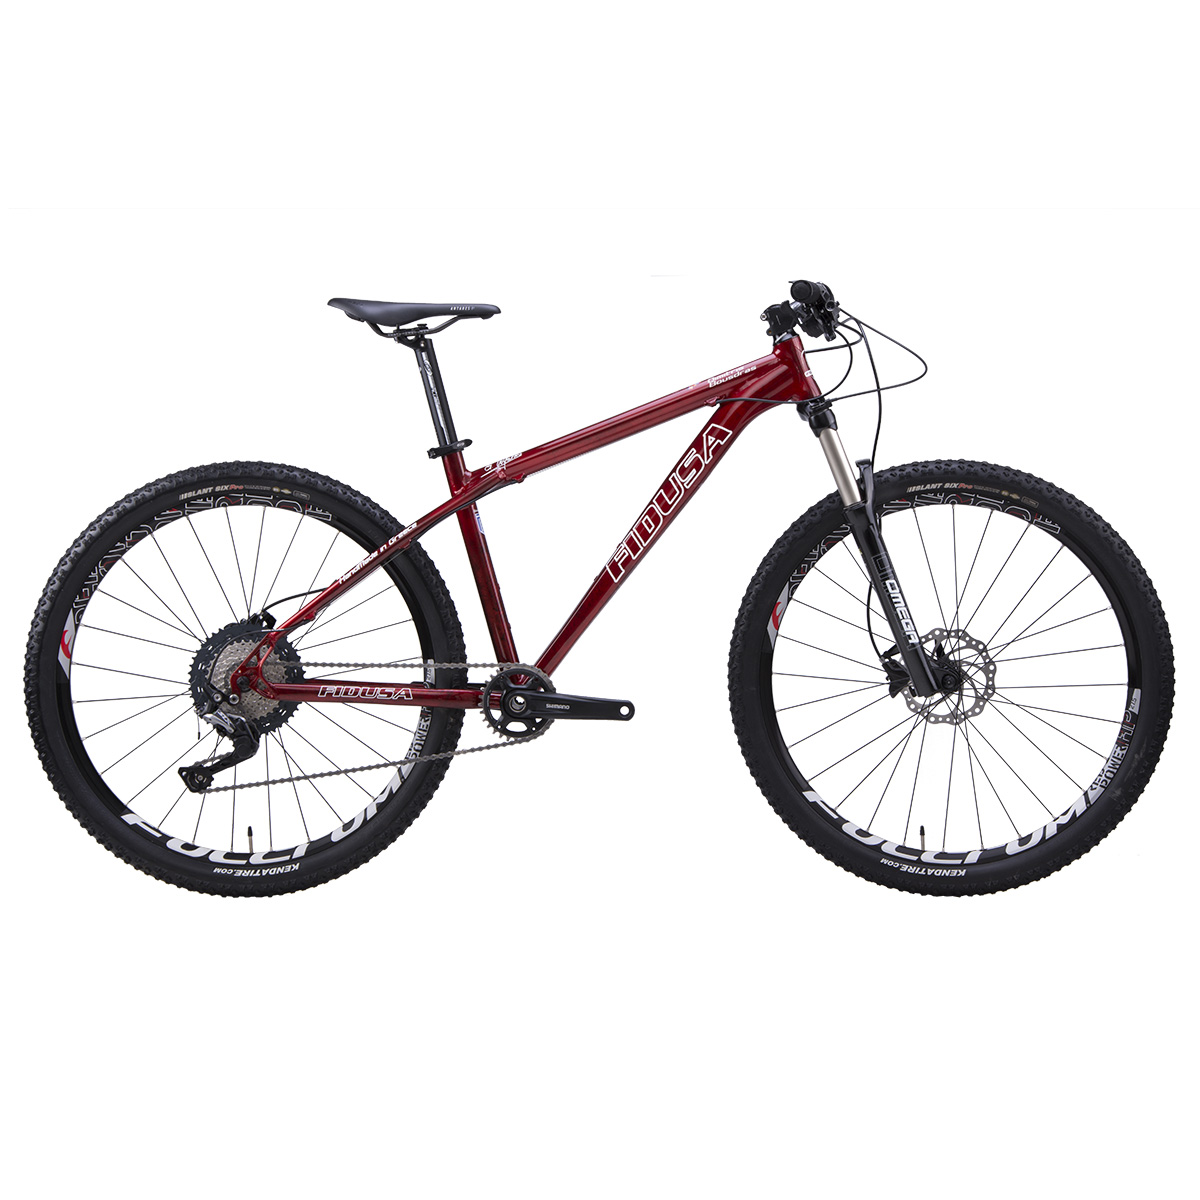 mtb-alloy-red-marble-fidusa-land To 27.5'' MTB ποδήλατο του Δημήτρη